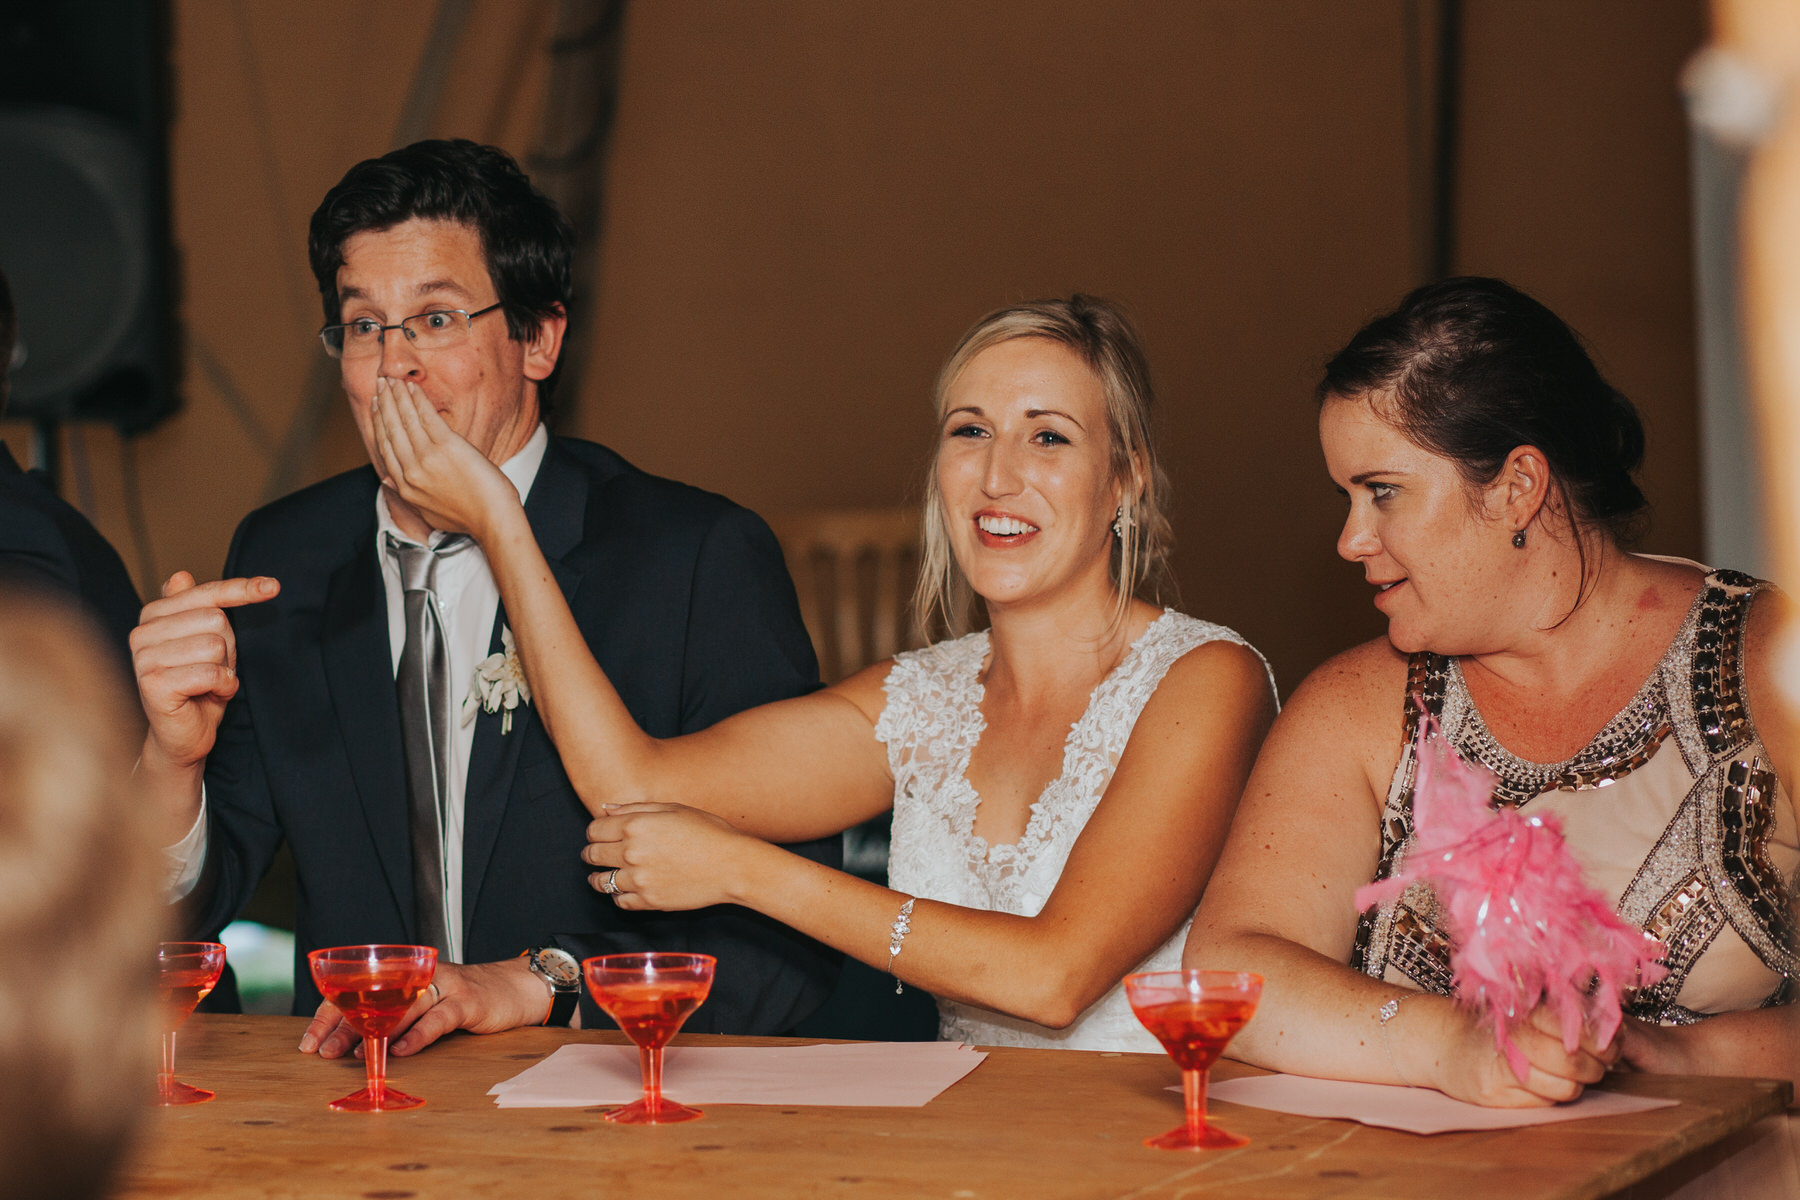 283 speeches drinking game Knepp Castle reportage wedding photographer.jpg